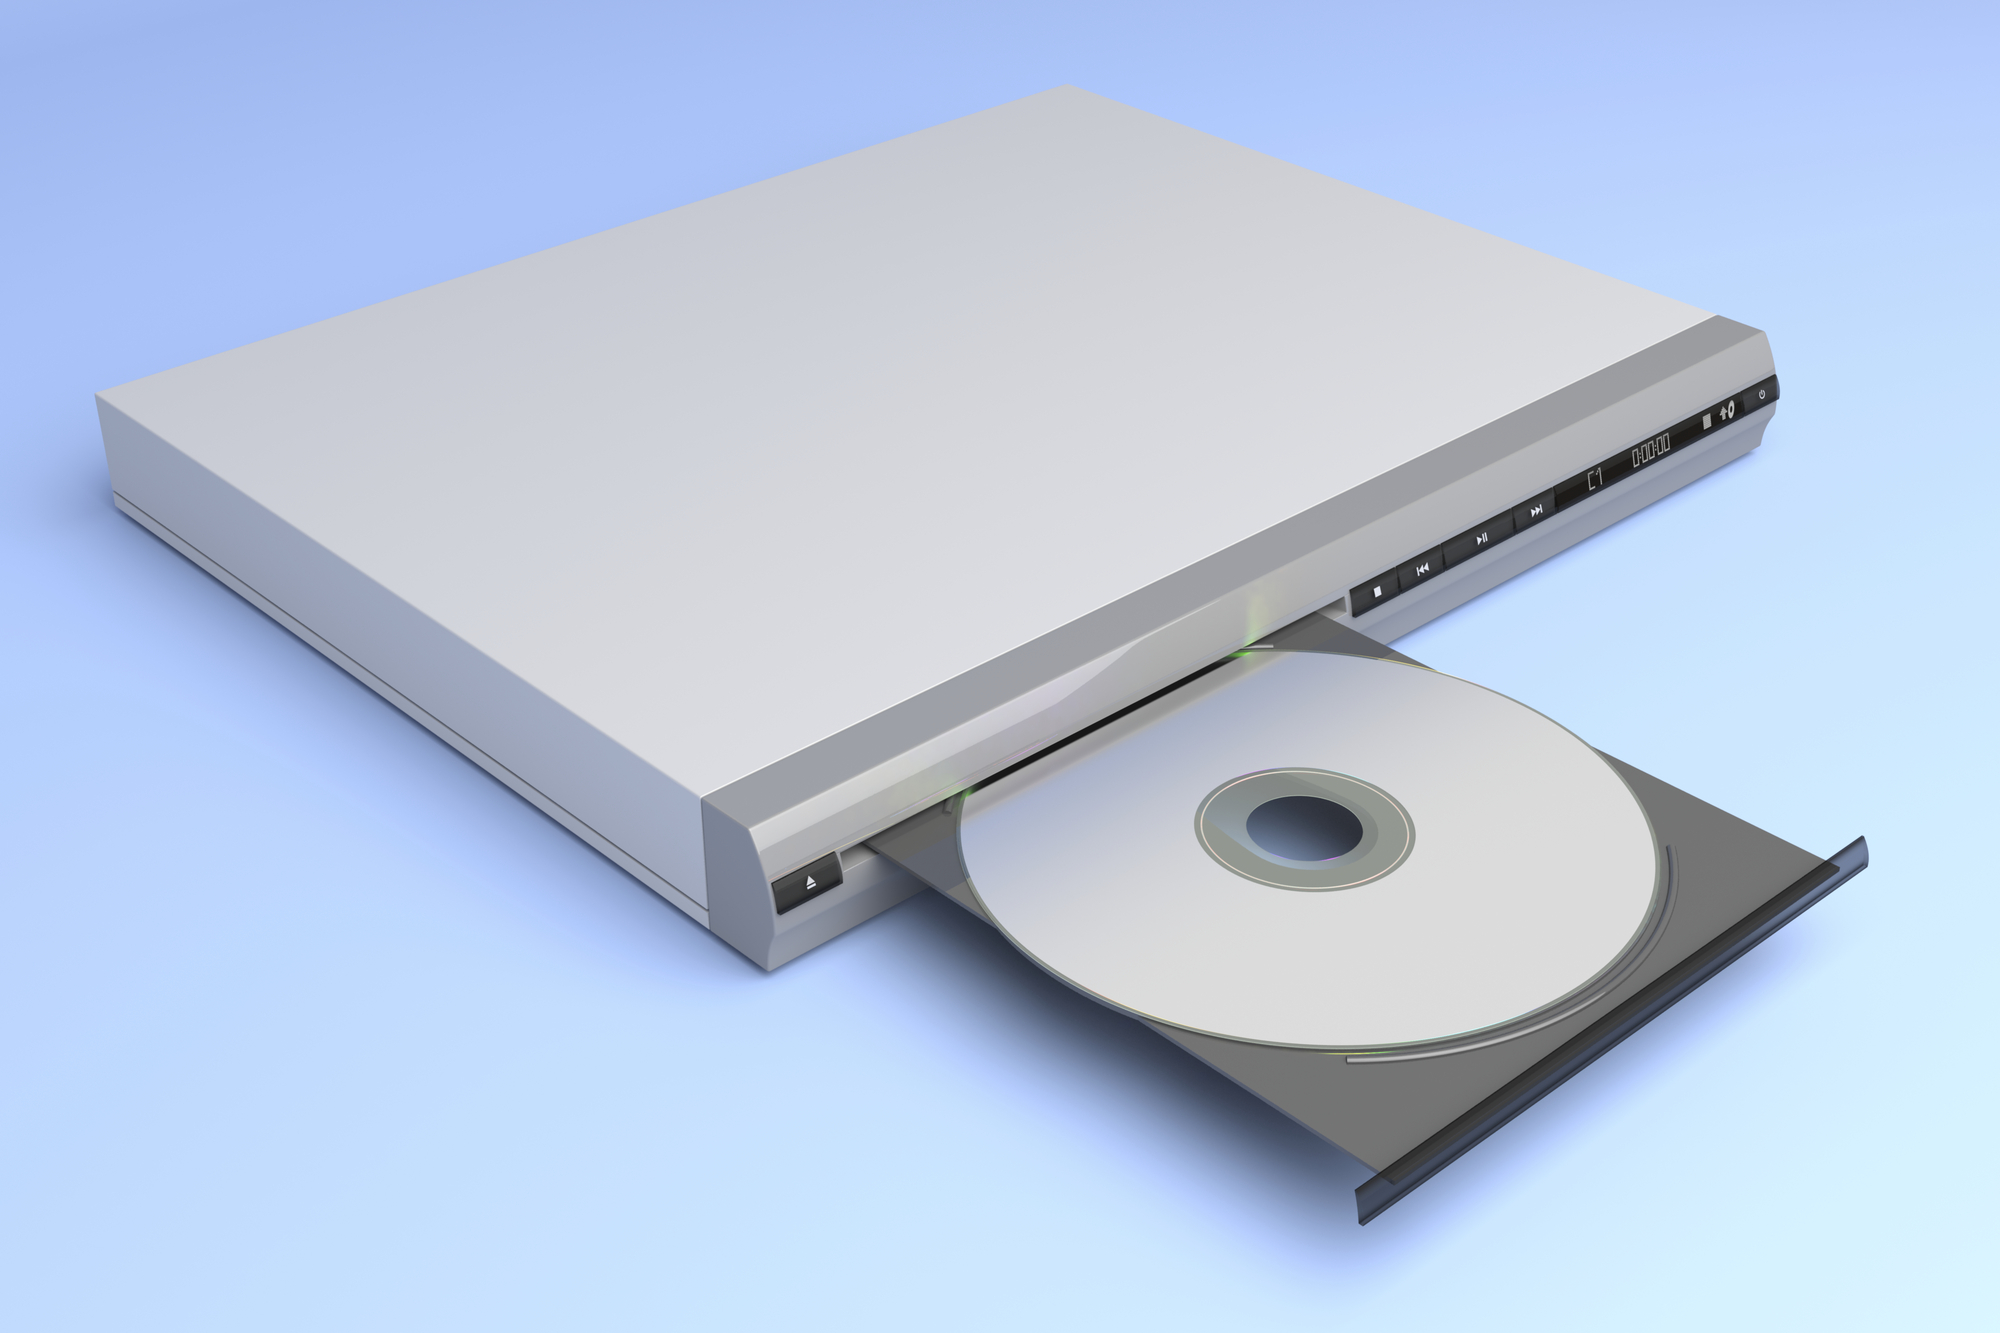 CD player with open tray on blue background